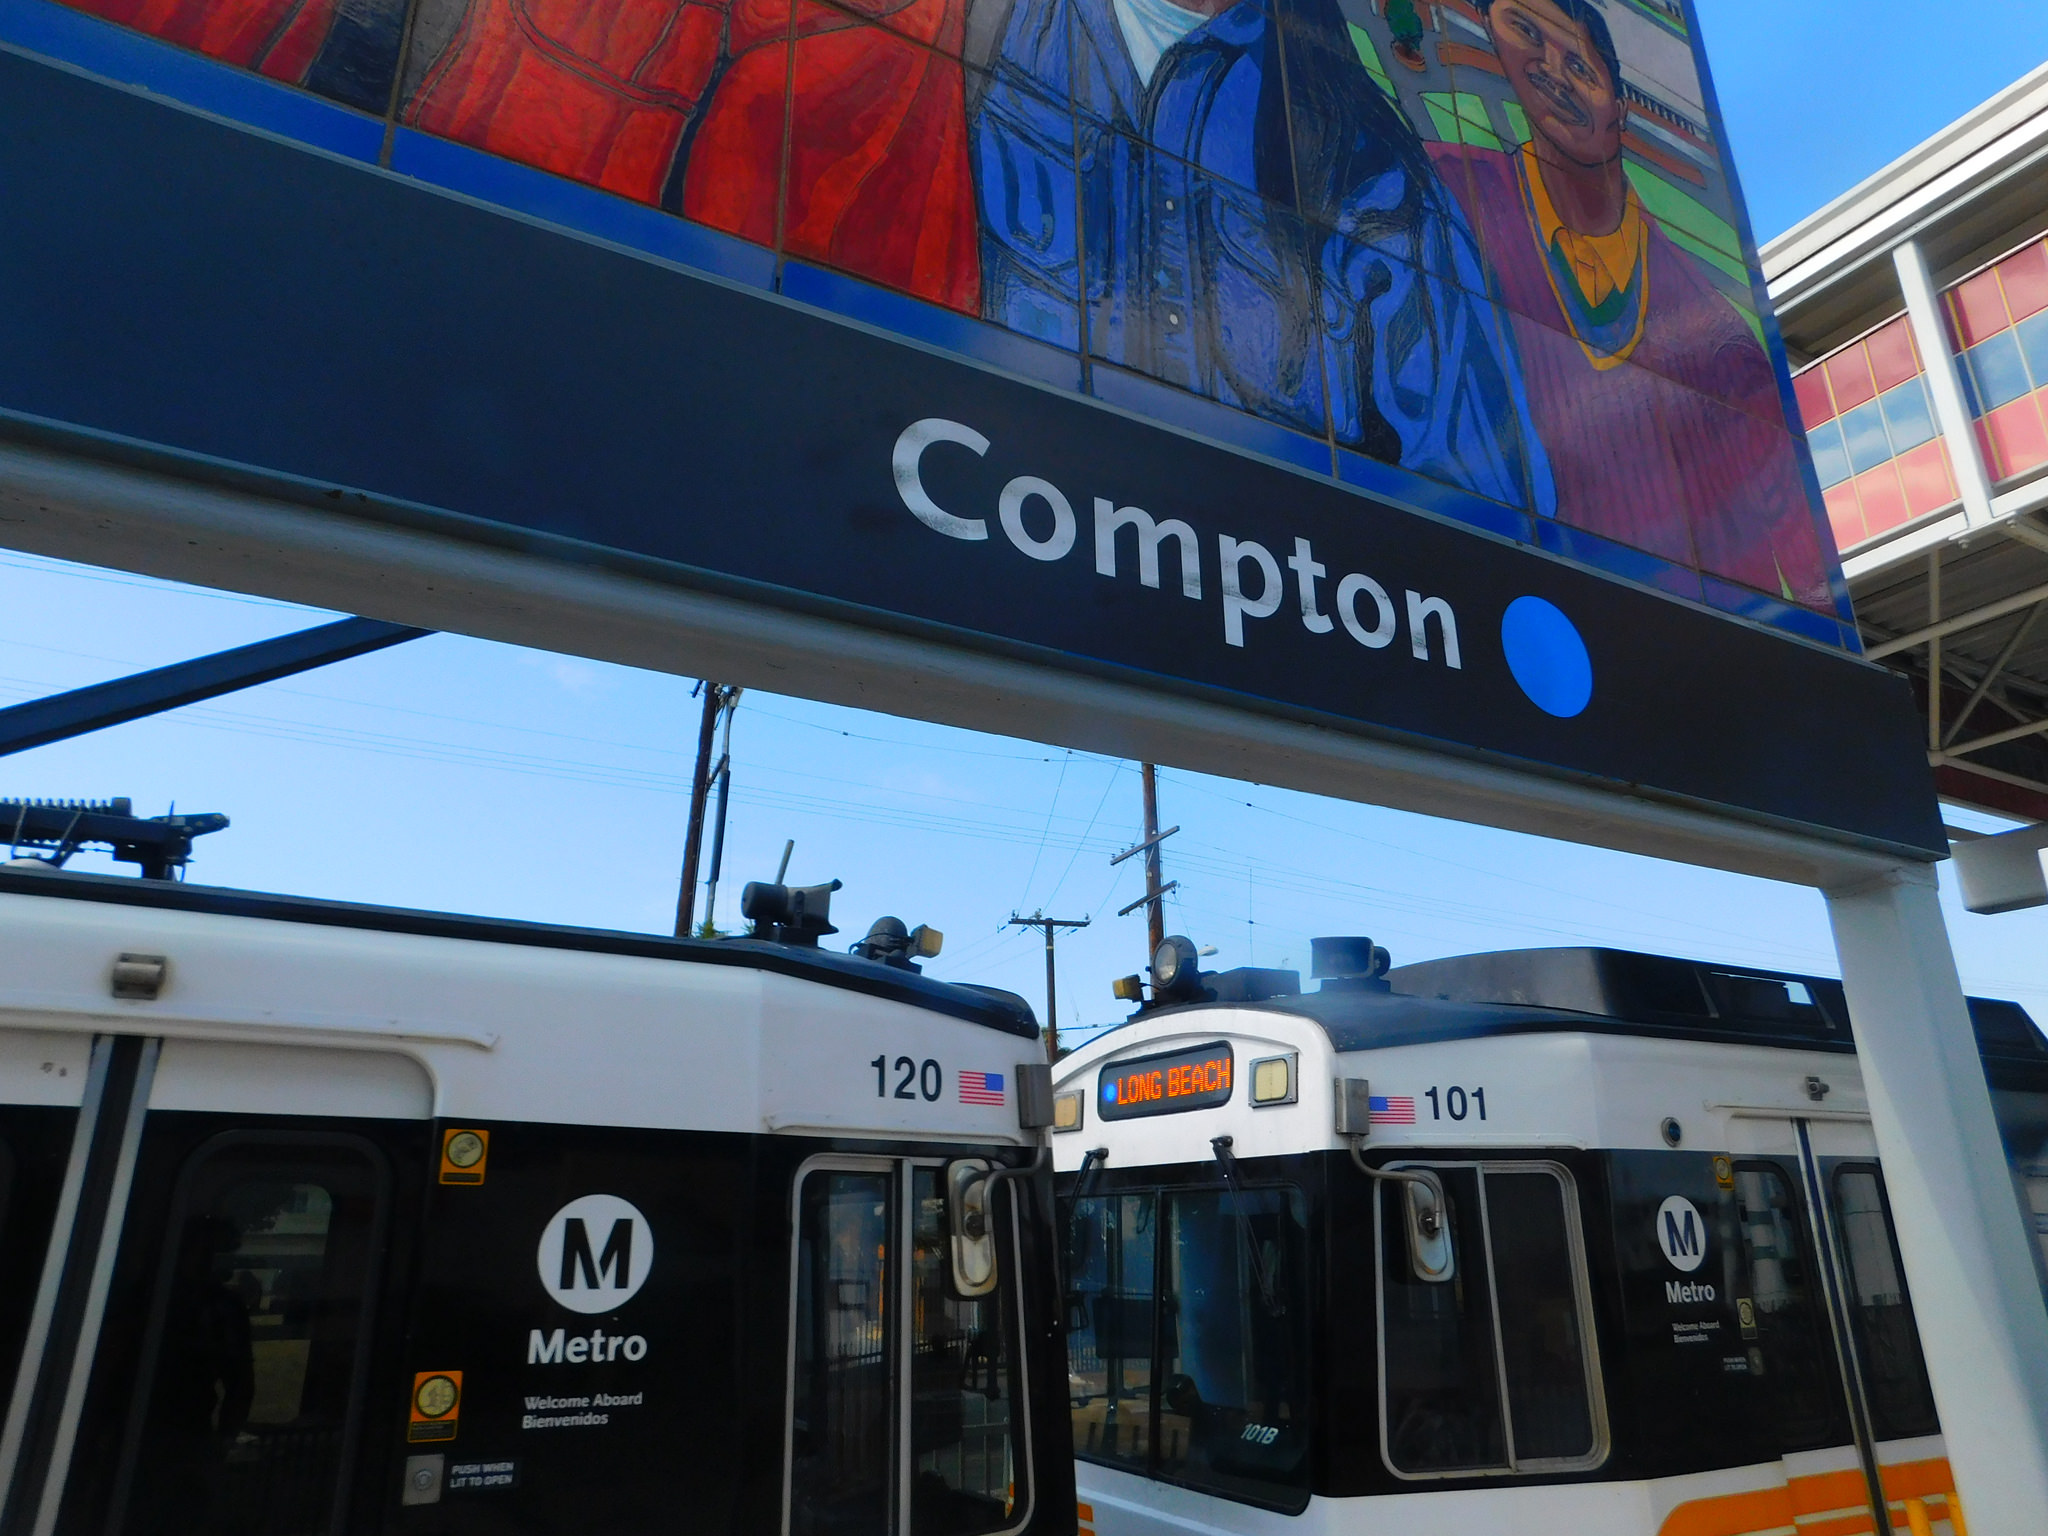 Compton Station provides limited transit access for citizens